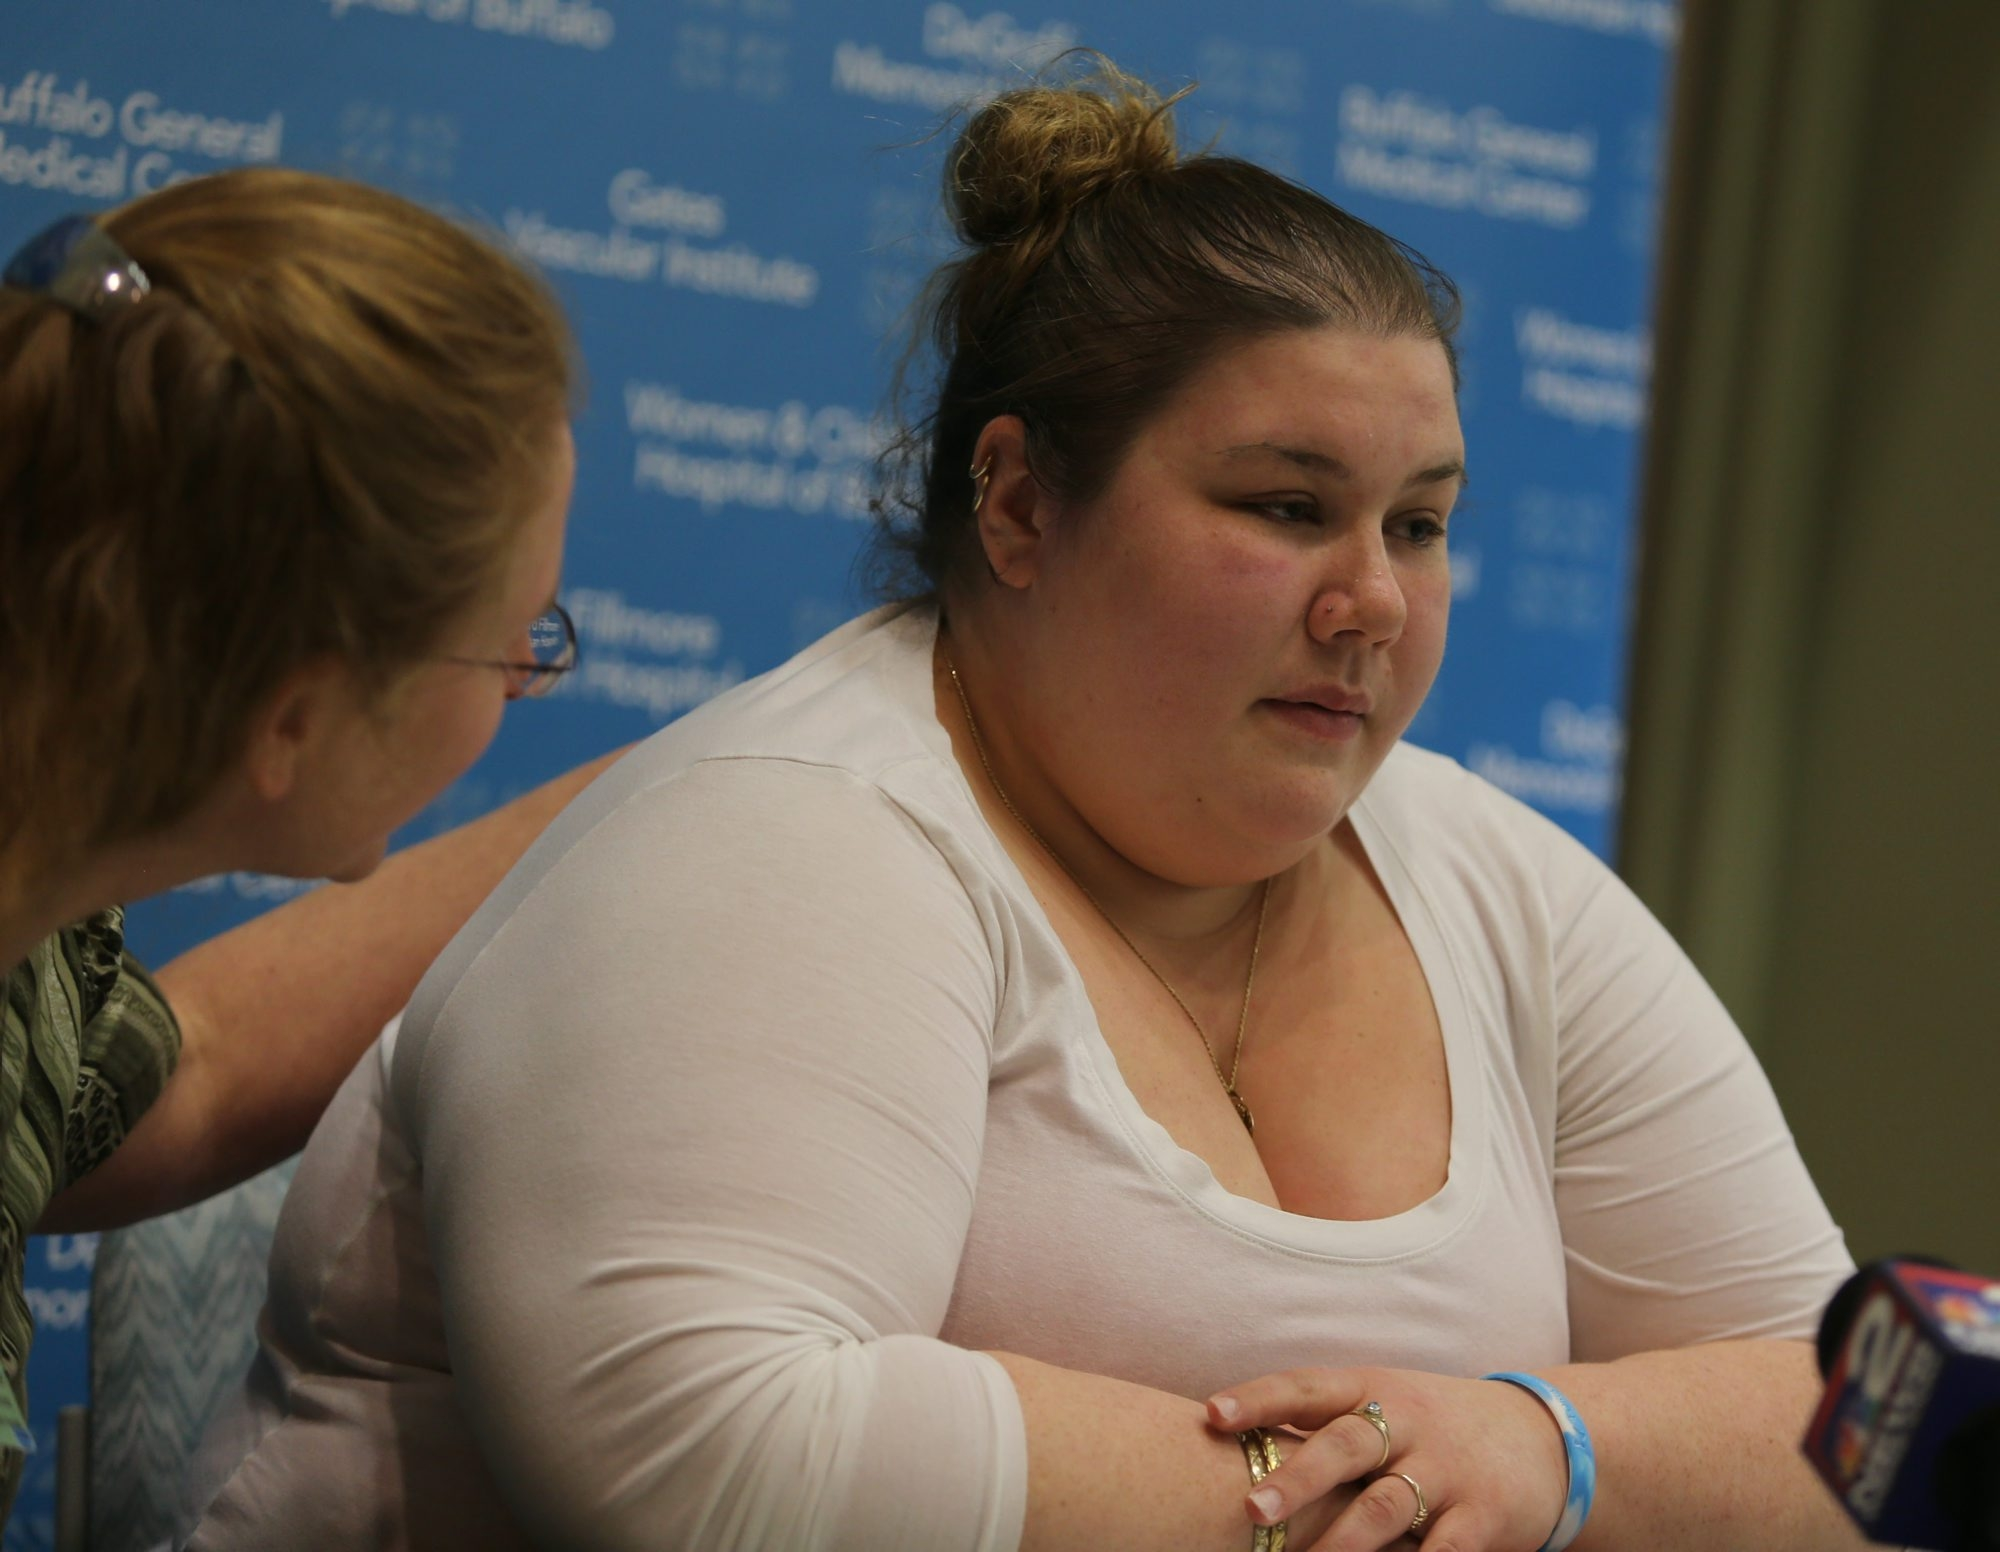 Amanda Castile, right, is comforted by Gail Bowden of UNYTS, left, as she speaks to the media Monday.